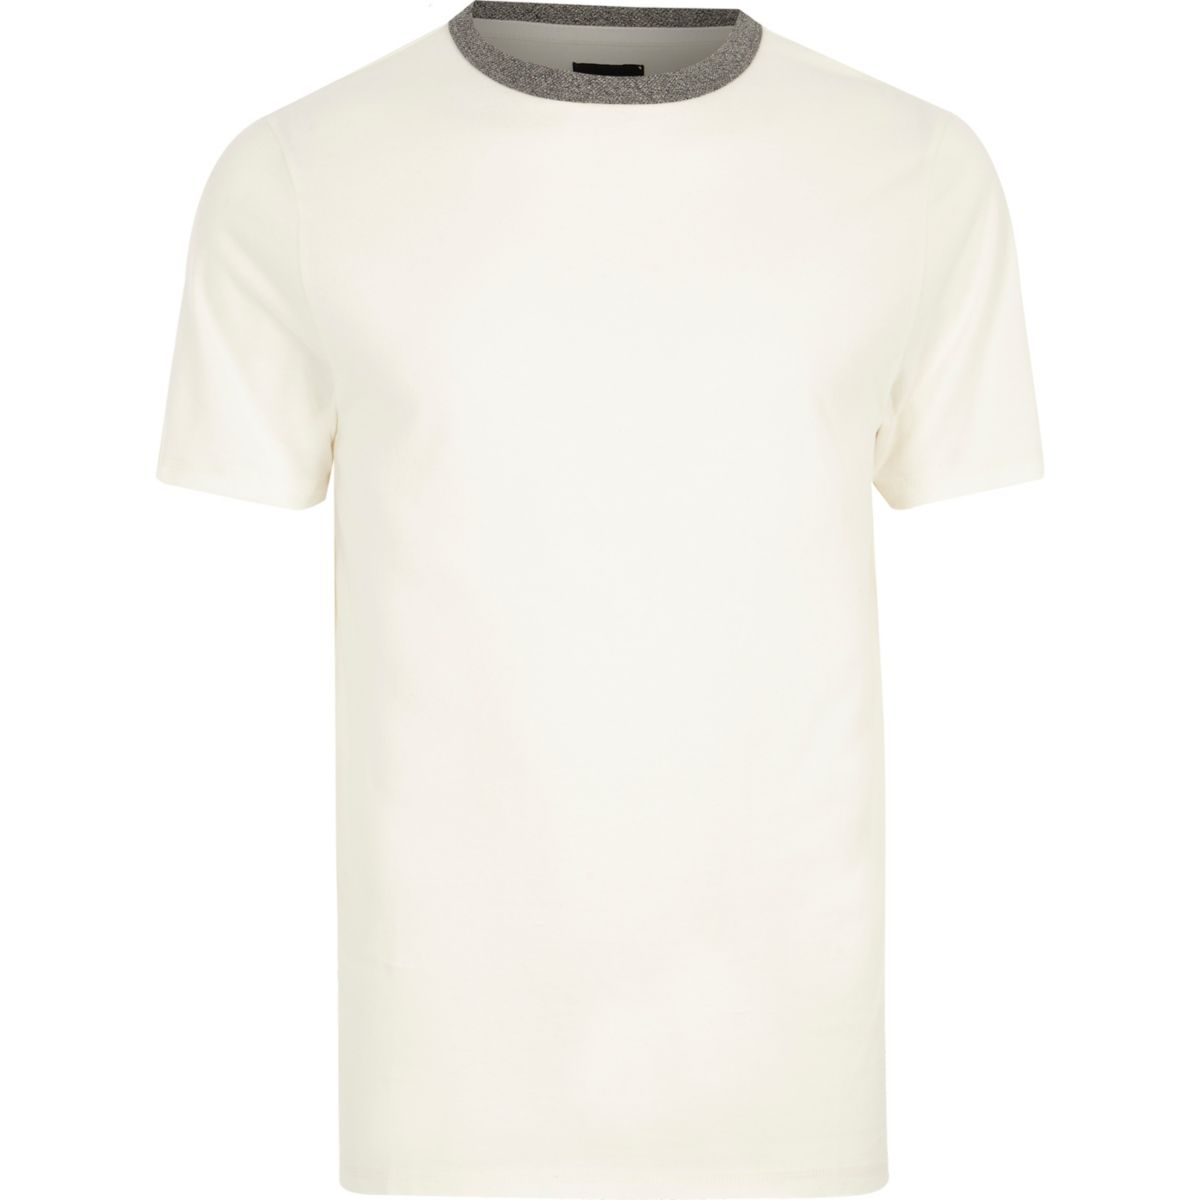 Cream contrast crew neck slim fit T-shirt